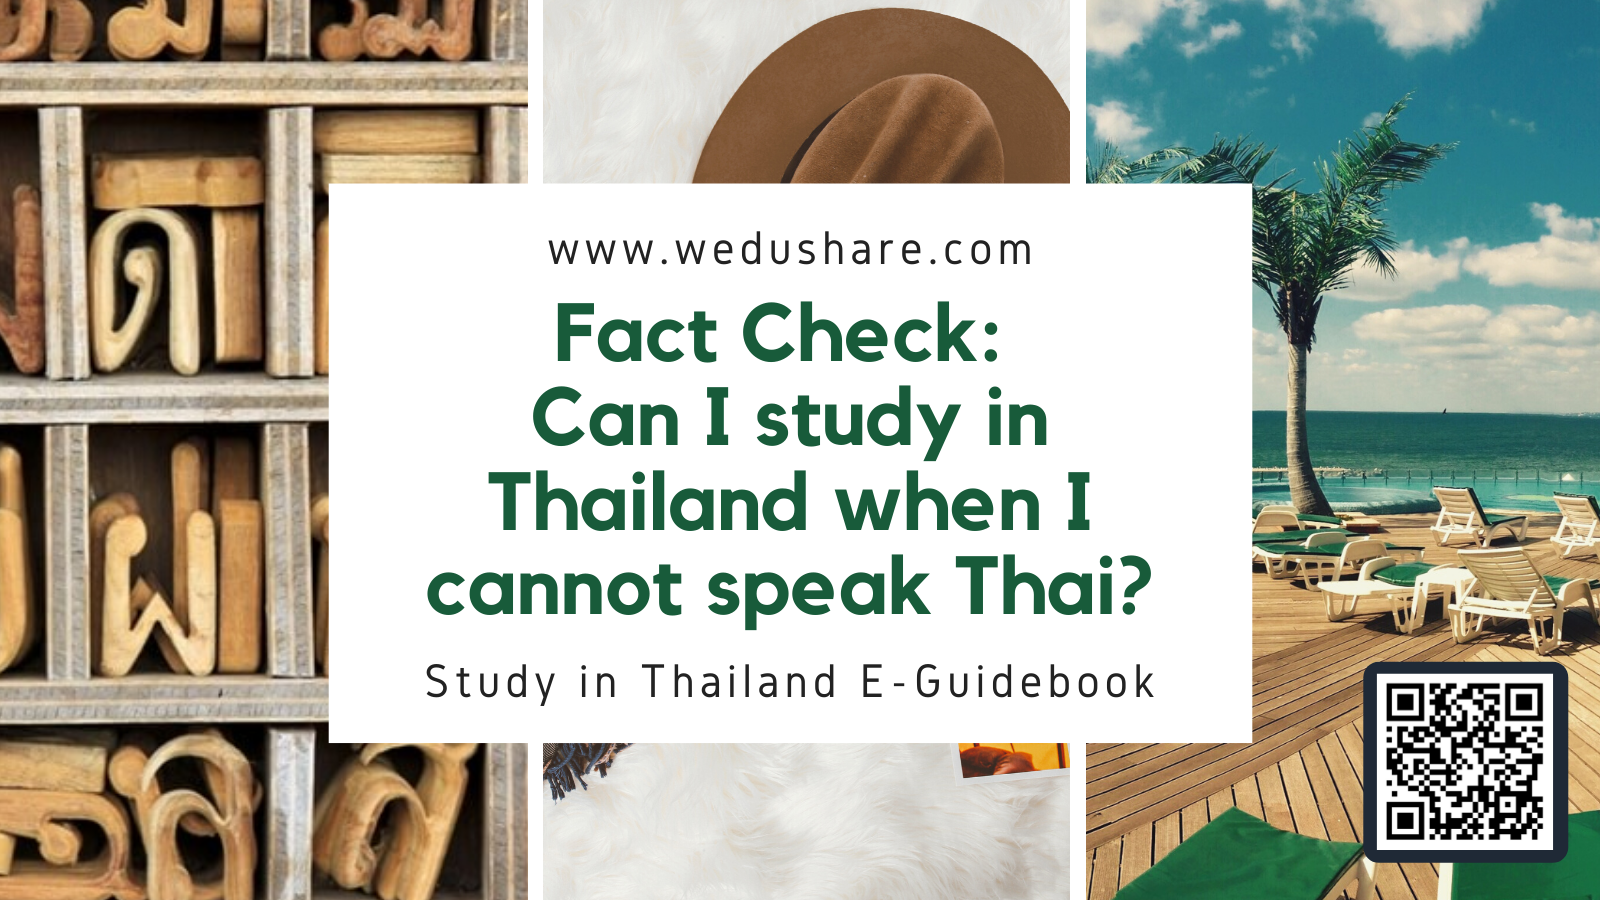 Fact Check: Can I study in Thailand when I cannot speak Thai?